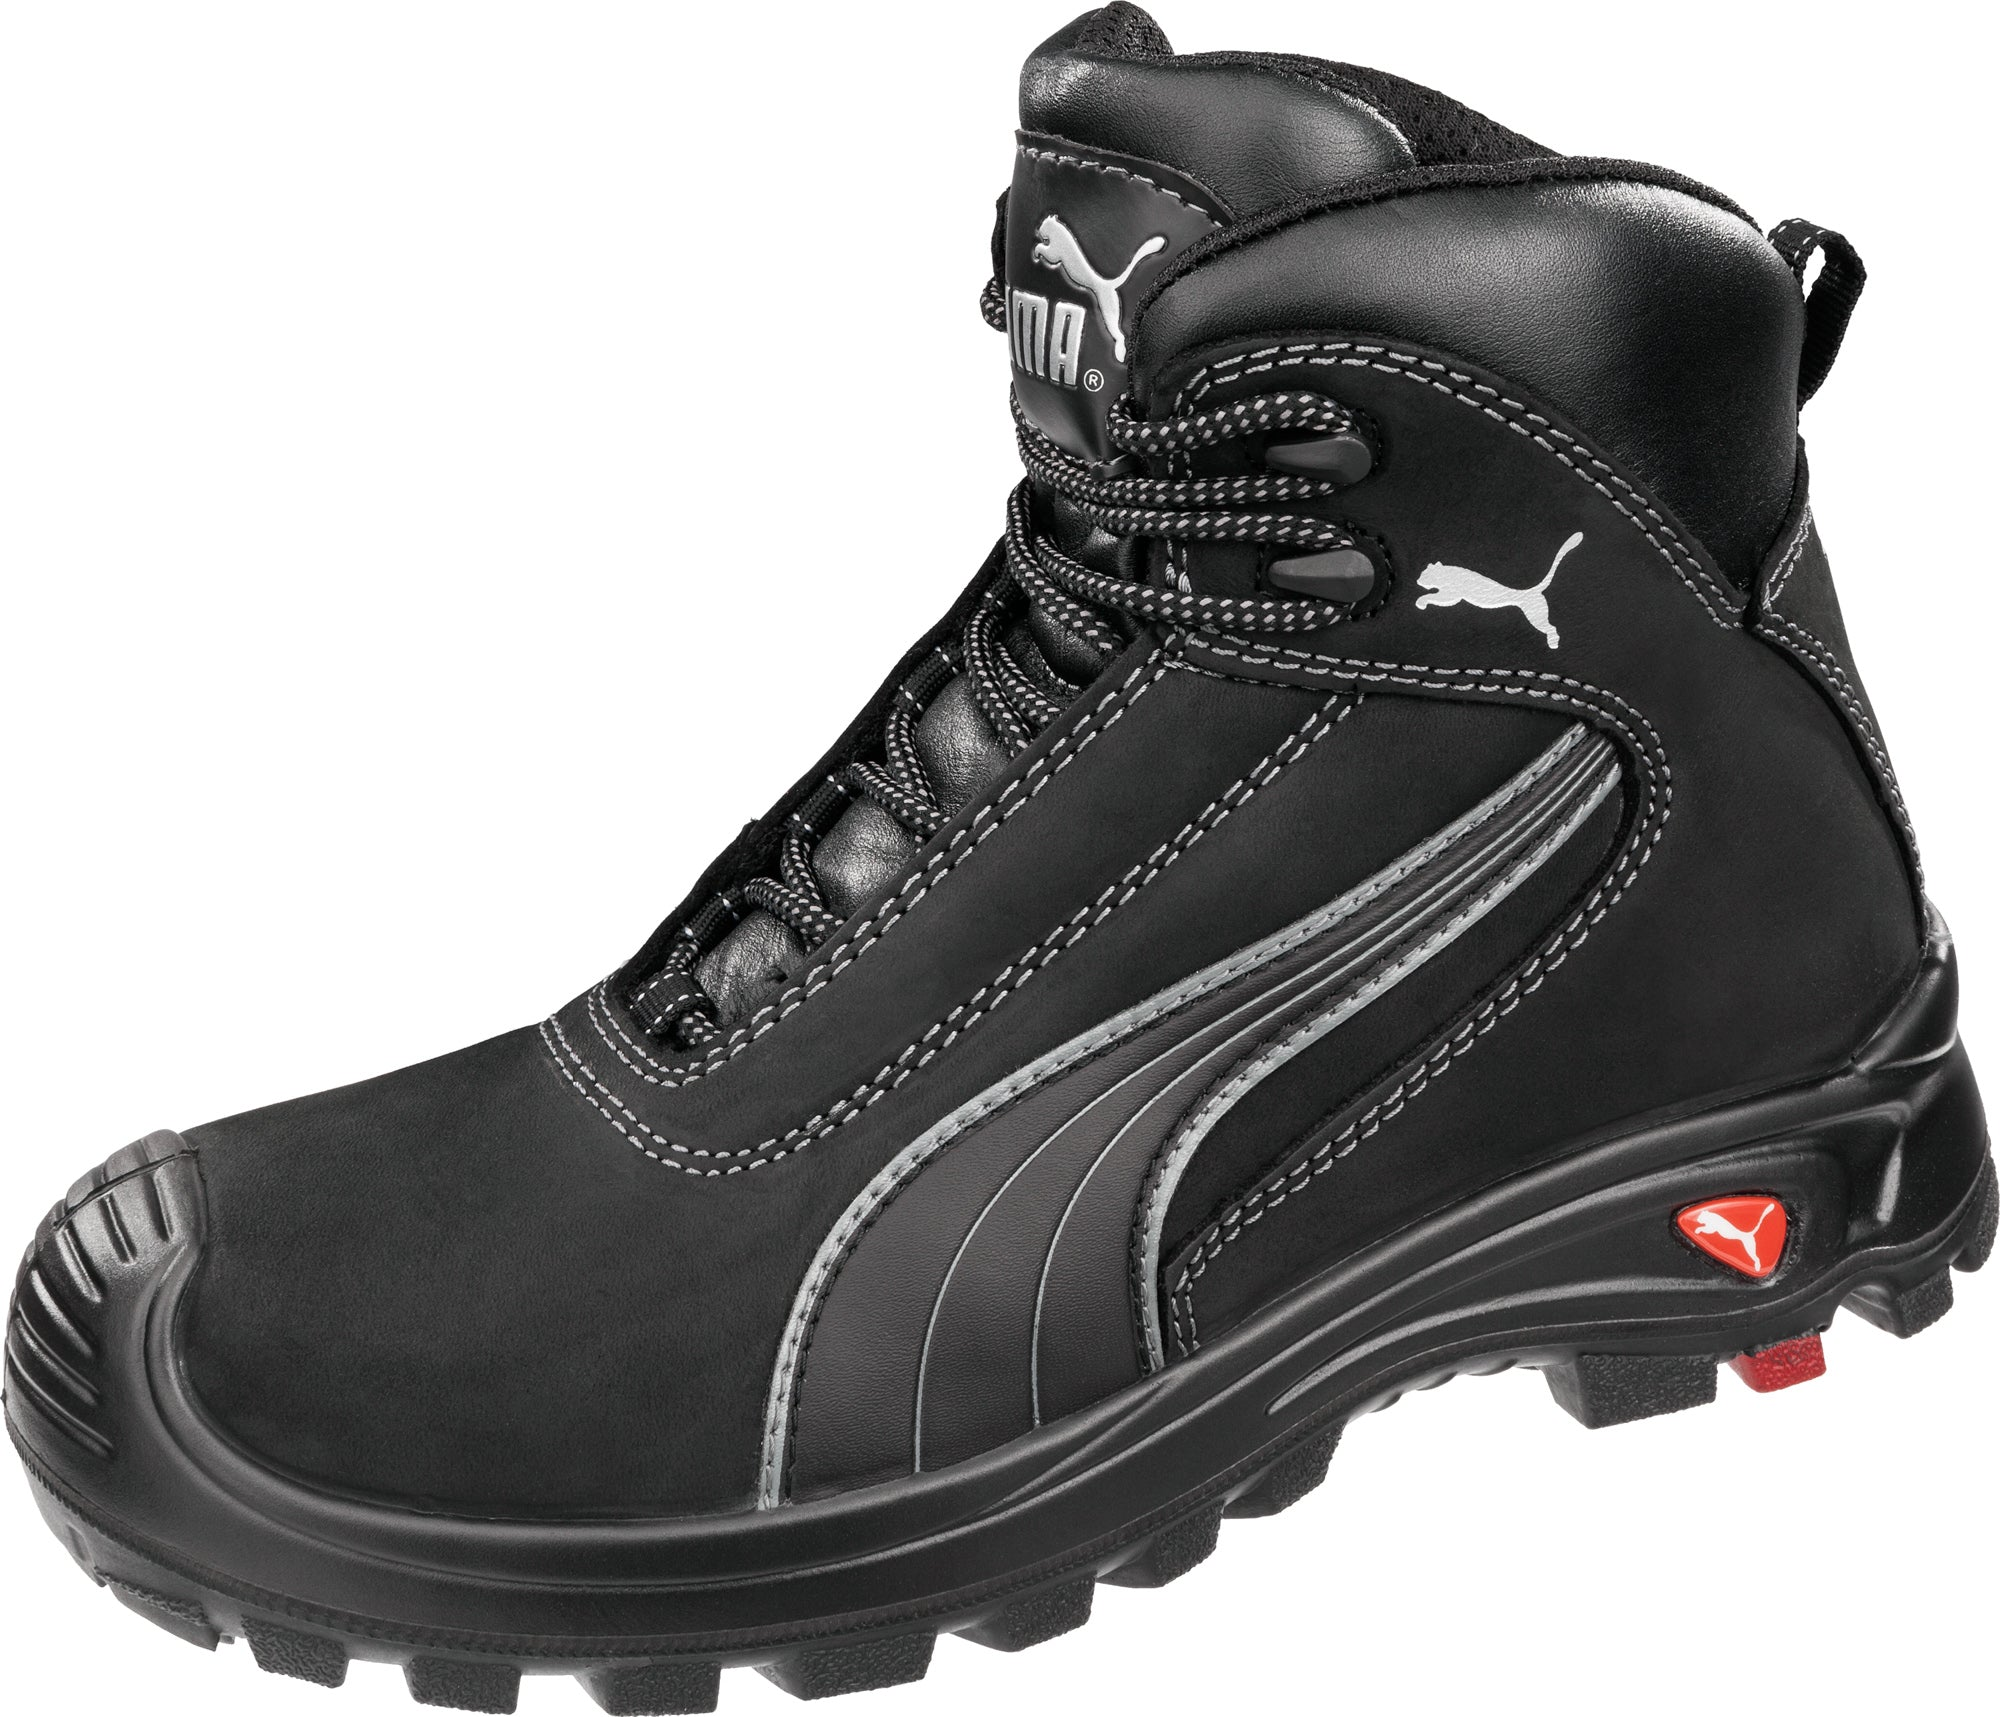 13bdfb9d424 Puma Safety Black Mens Leather Cascades Mid EH WRU CT LaceUp Work ...